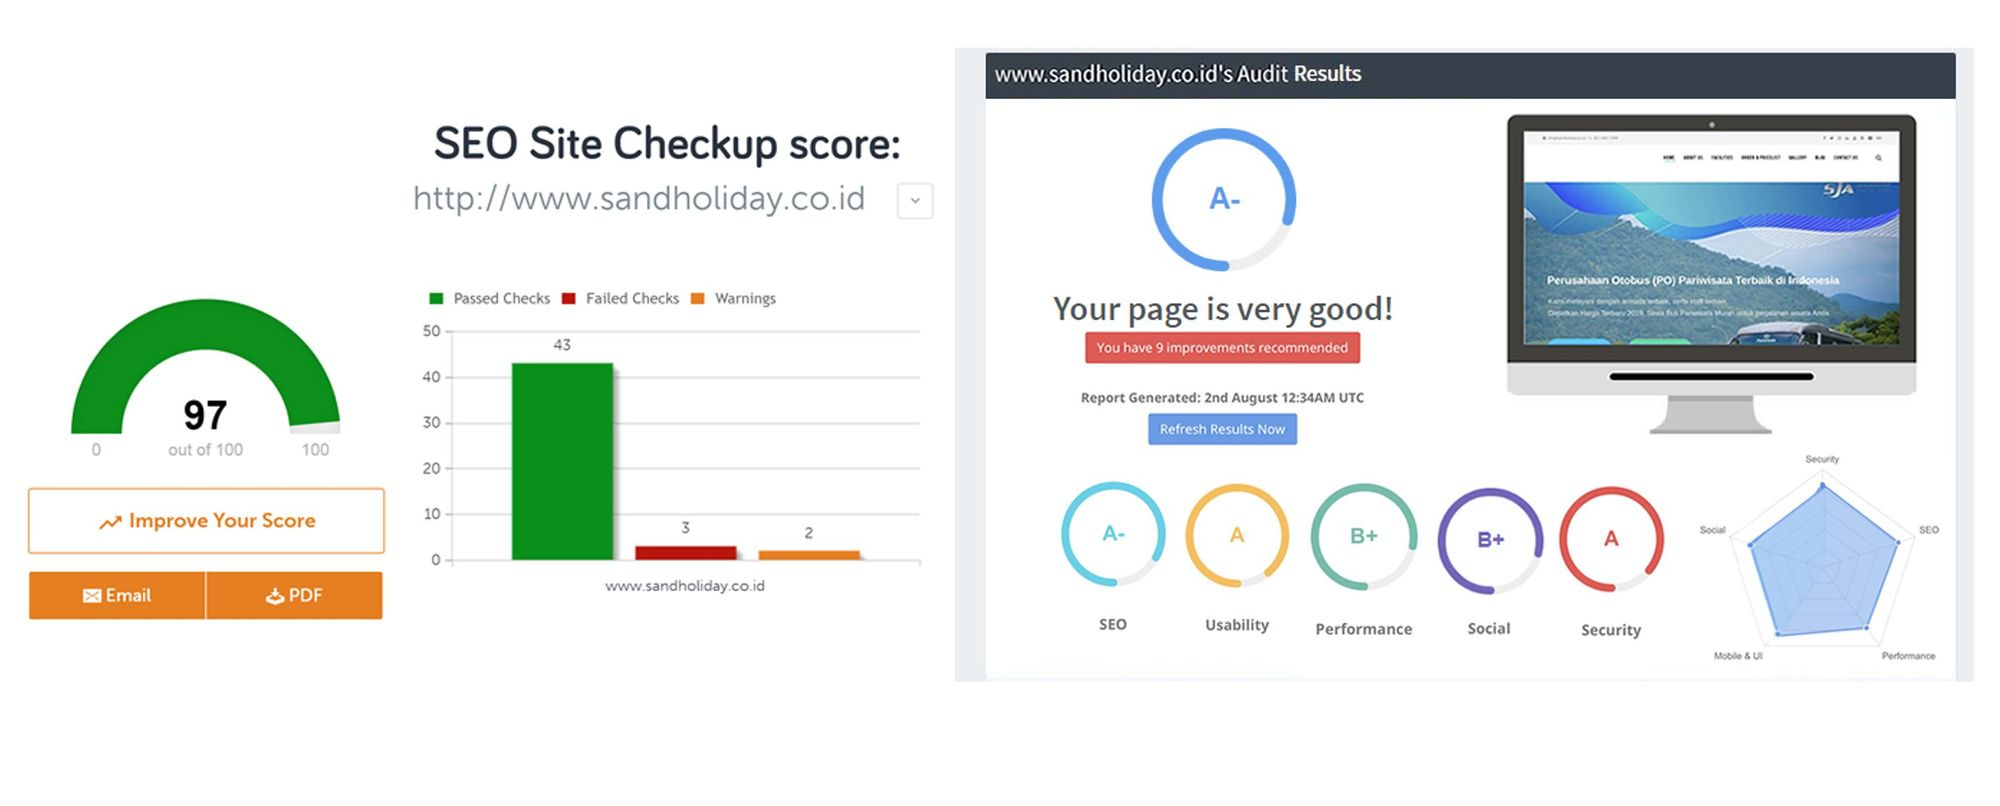 SEO Site Checkup Score - On-page SEO Audit - Jasa Artikel SEO - Arfadia